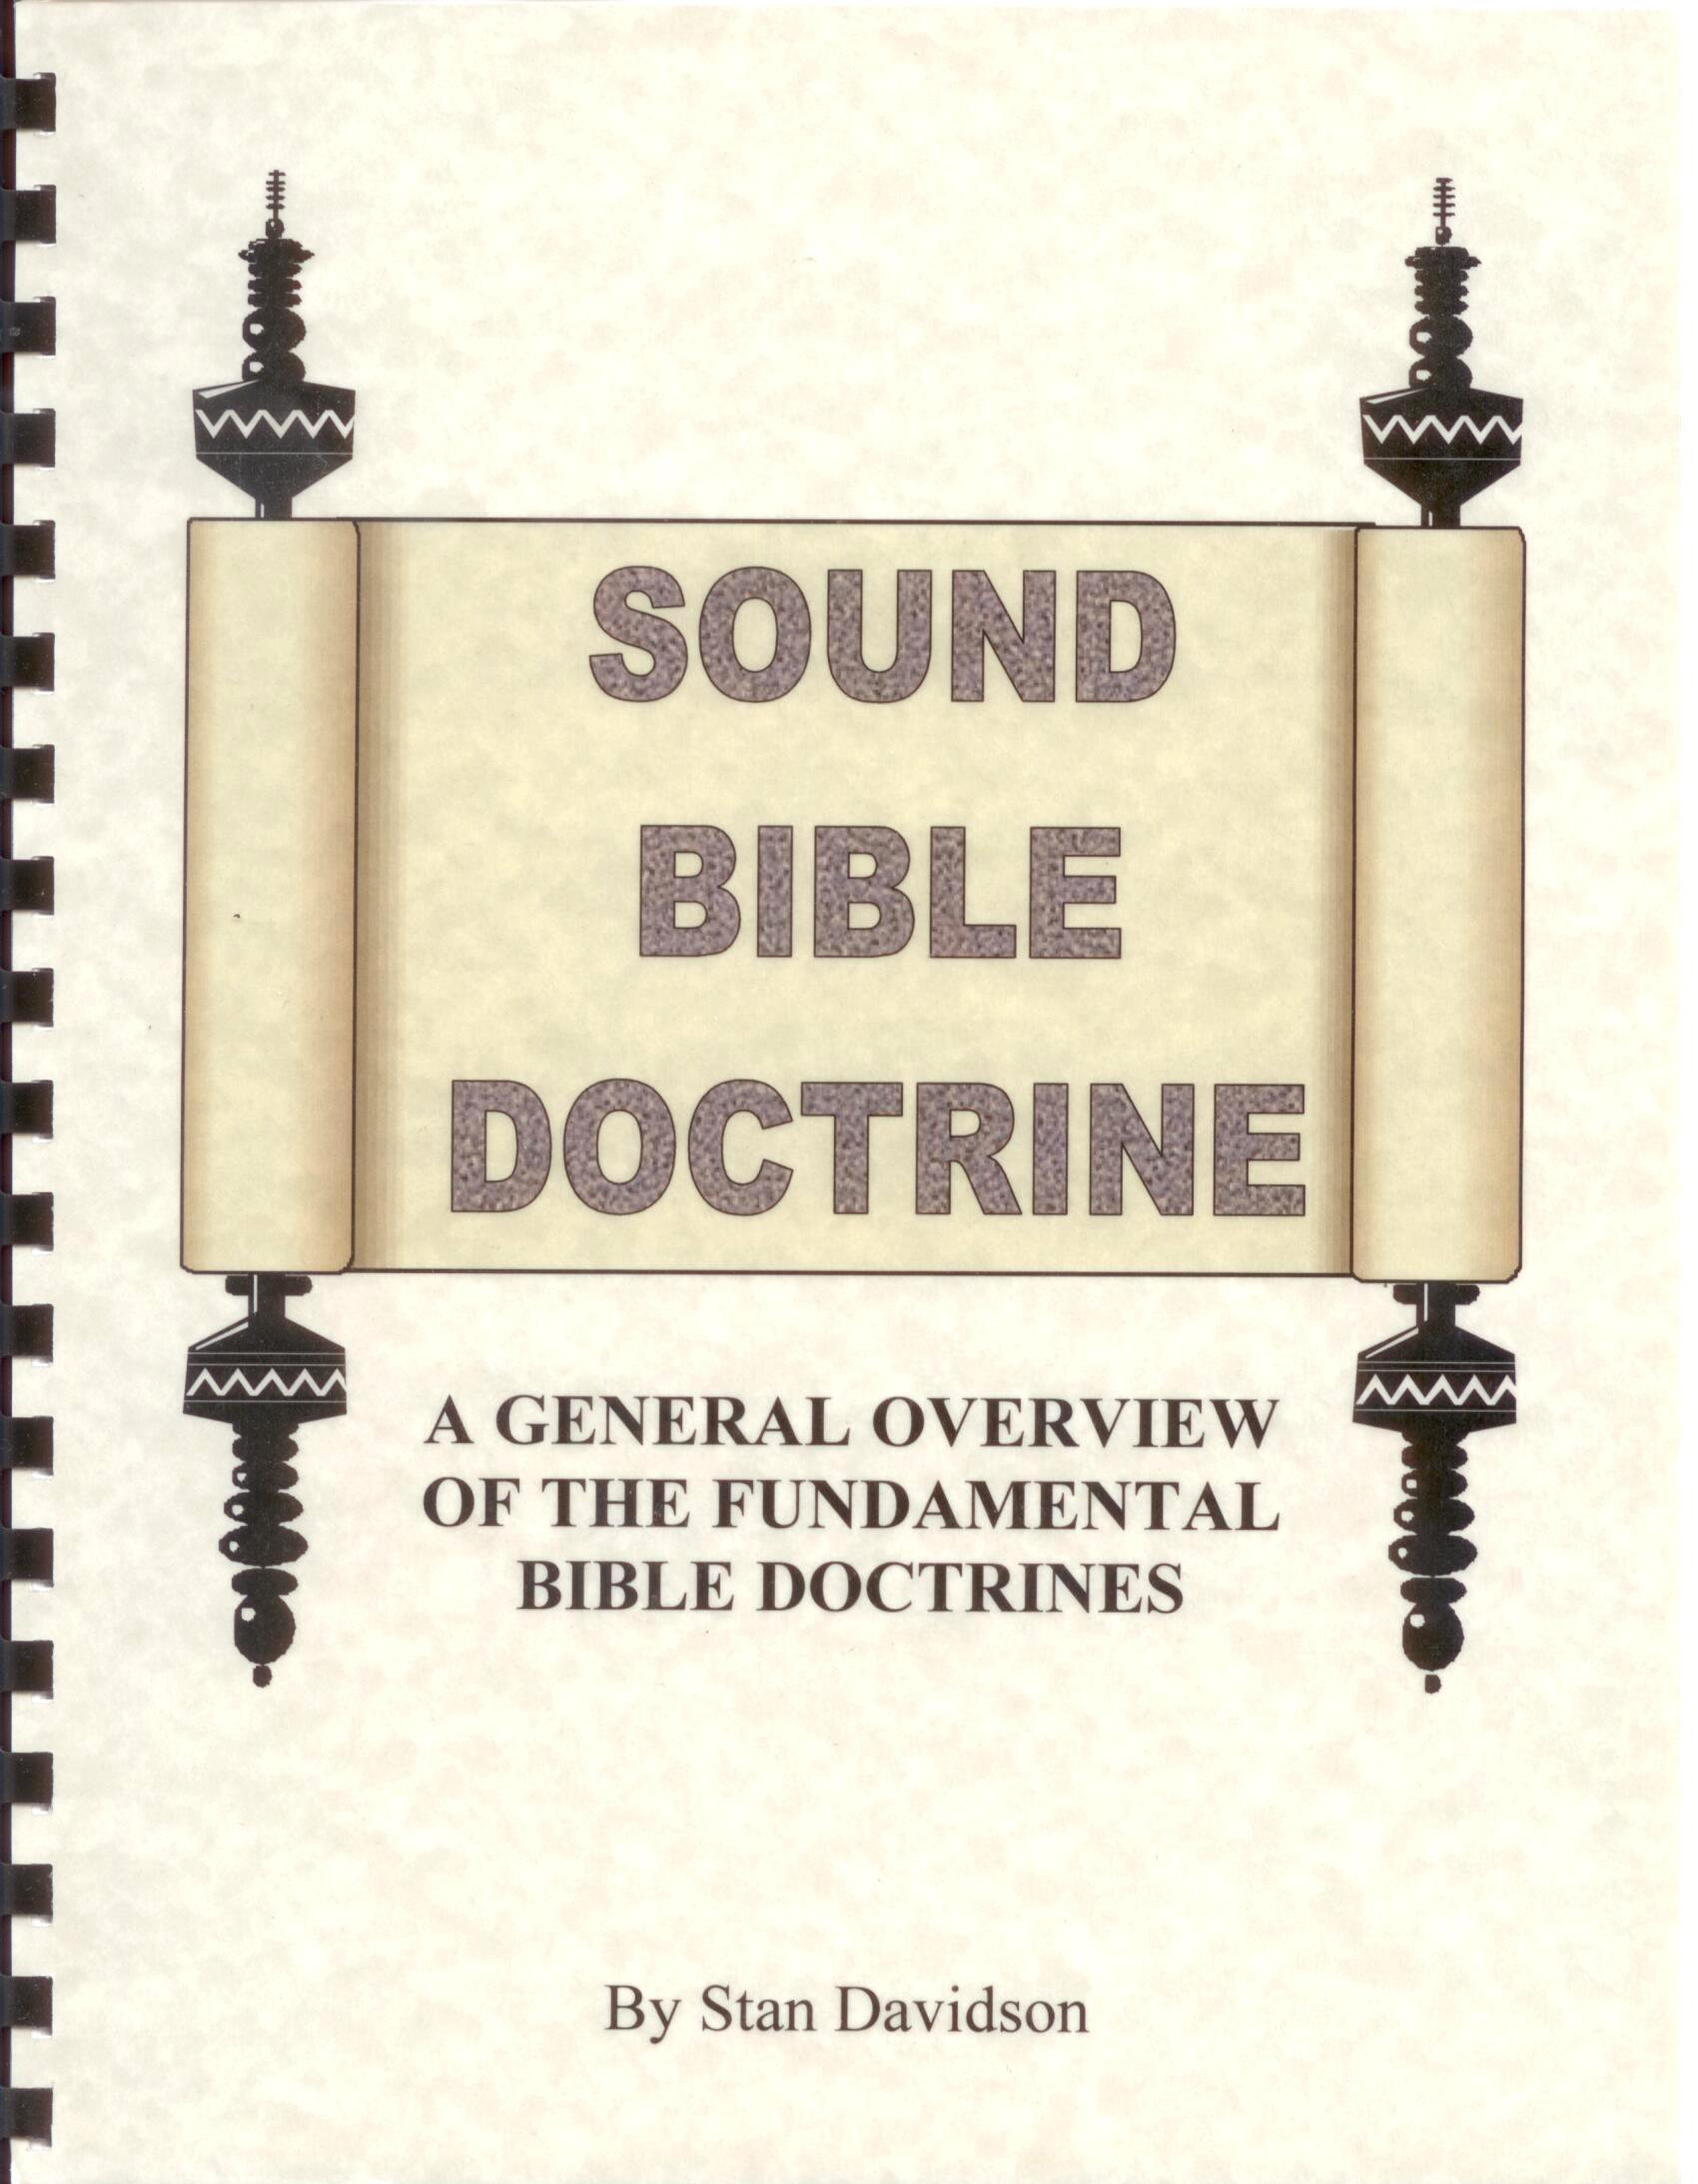 Sound Bible Doctrine A General Overview Of The Fundamental Bible